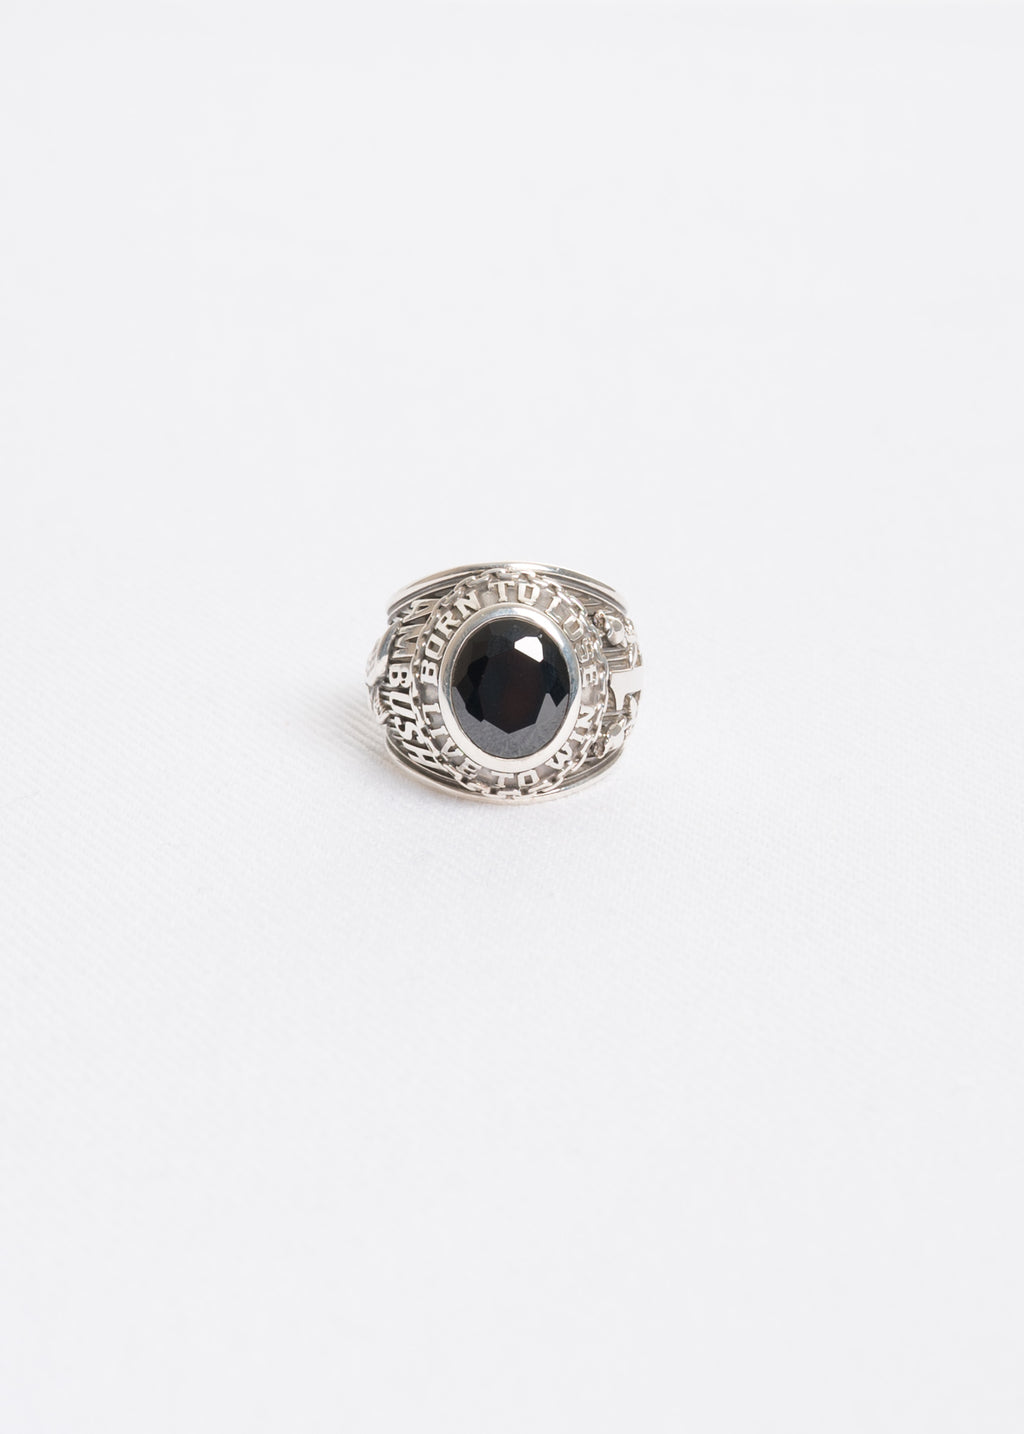 Black and Silver Class Ring